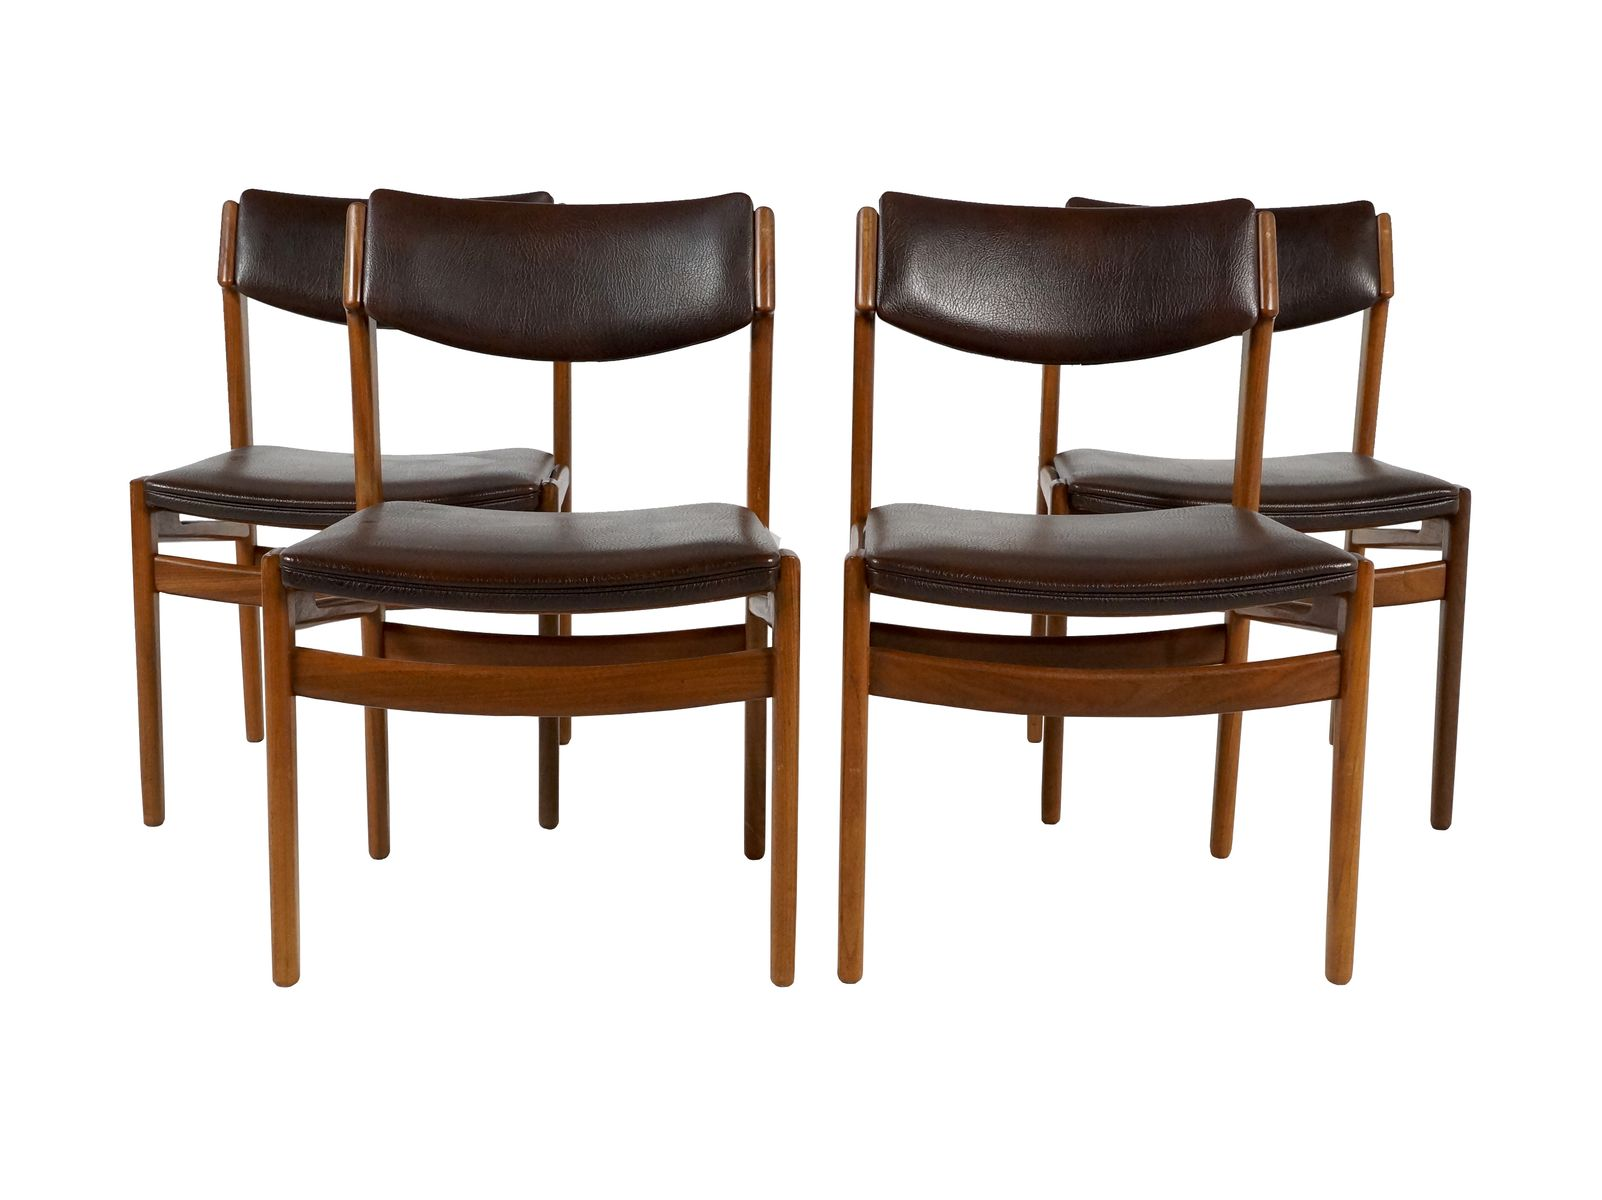 Teak Dining Chairs from TopForm 1960s Set of 4 for sale at Pamono